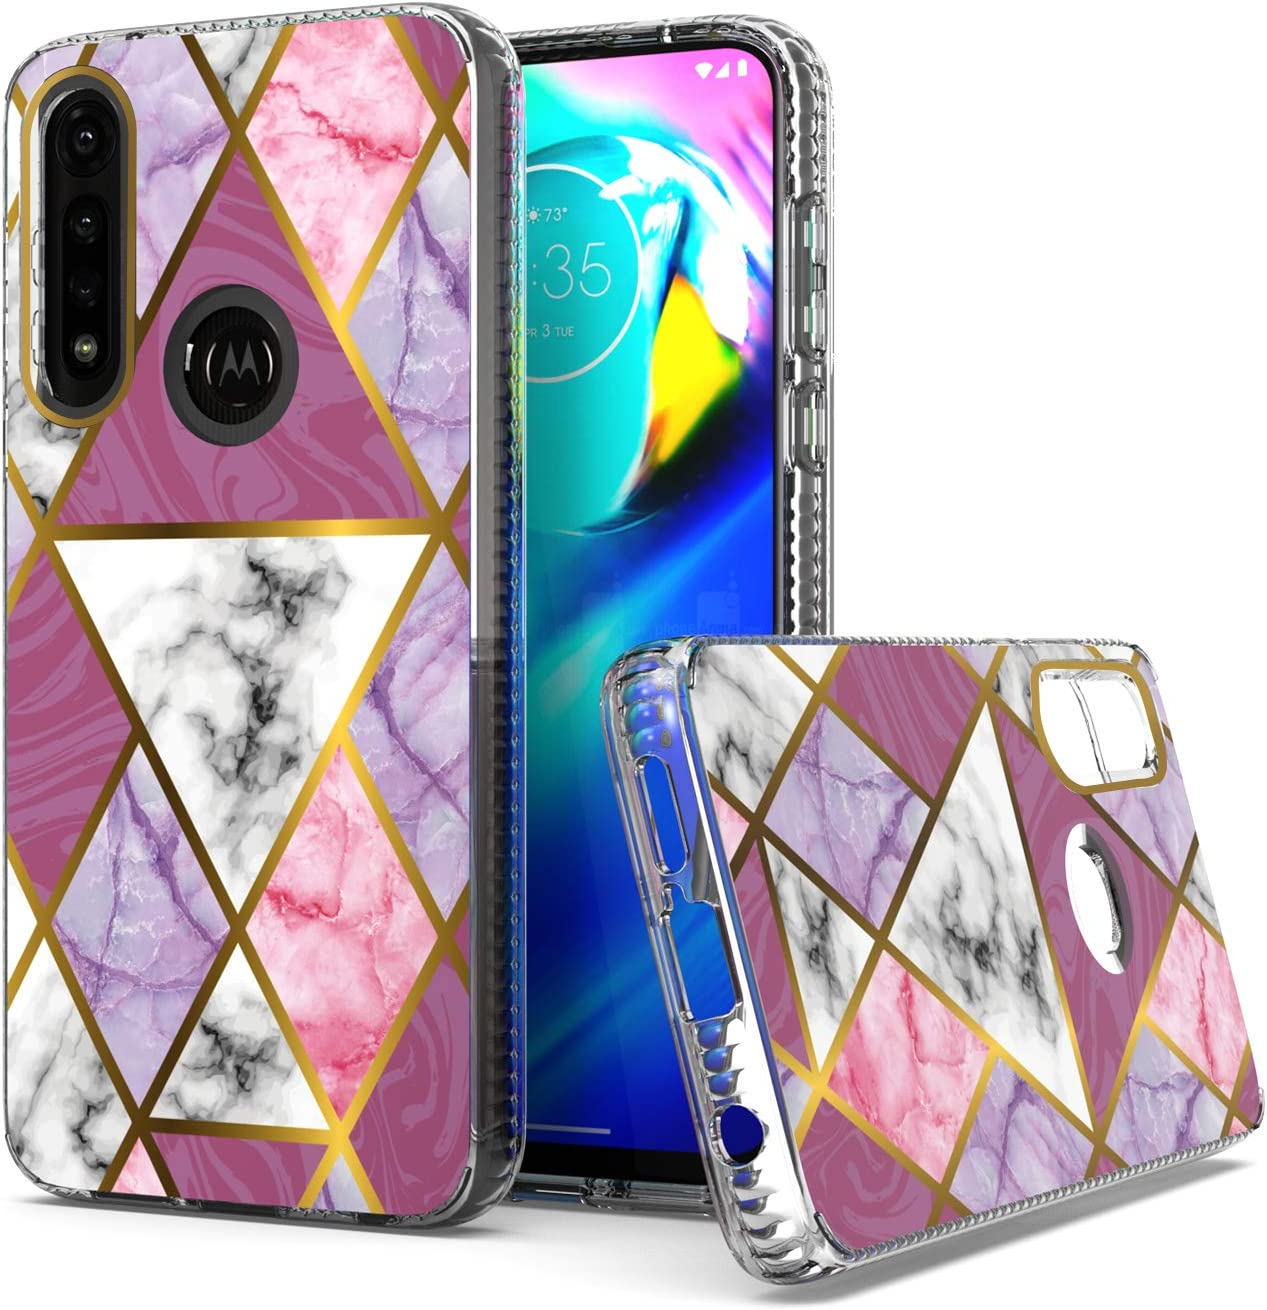 KWEICASE Cell Phone Case for Motorola Moto G Power 2020, Moto G Power Clear Shockproof Bumper Heavy Duty Hrbrid Hard Back Drop Protection Cover Case for Women Girls, Pink Geometric Marble